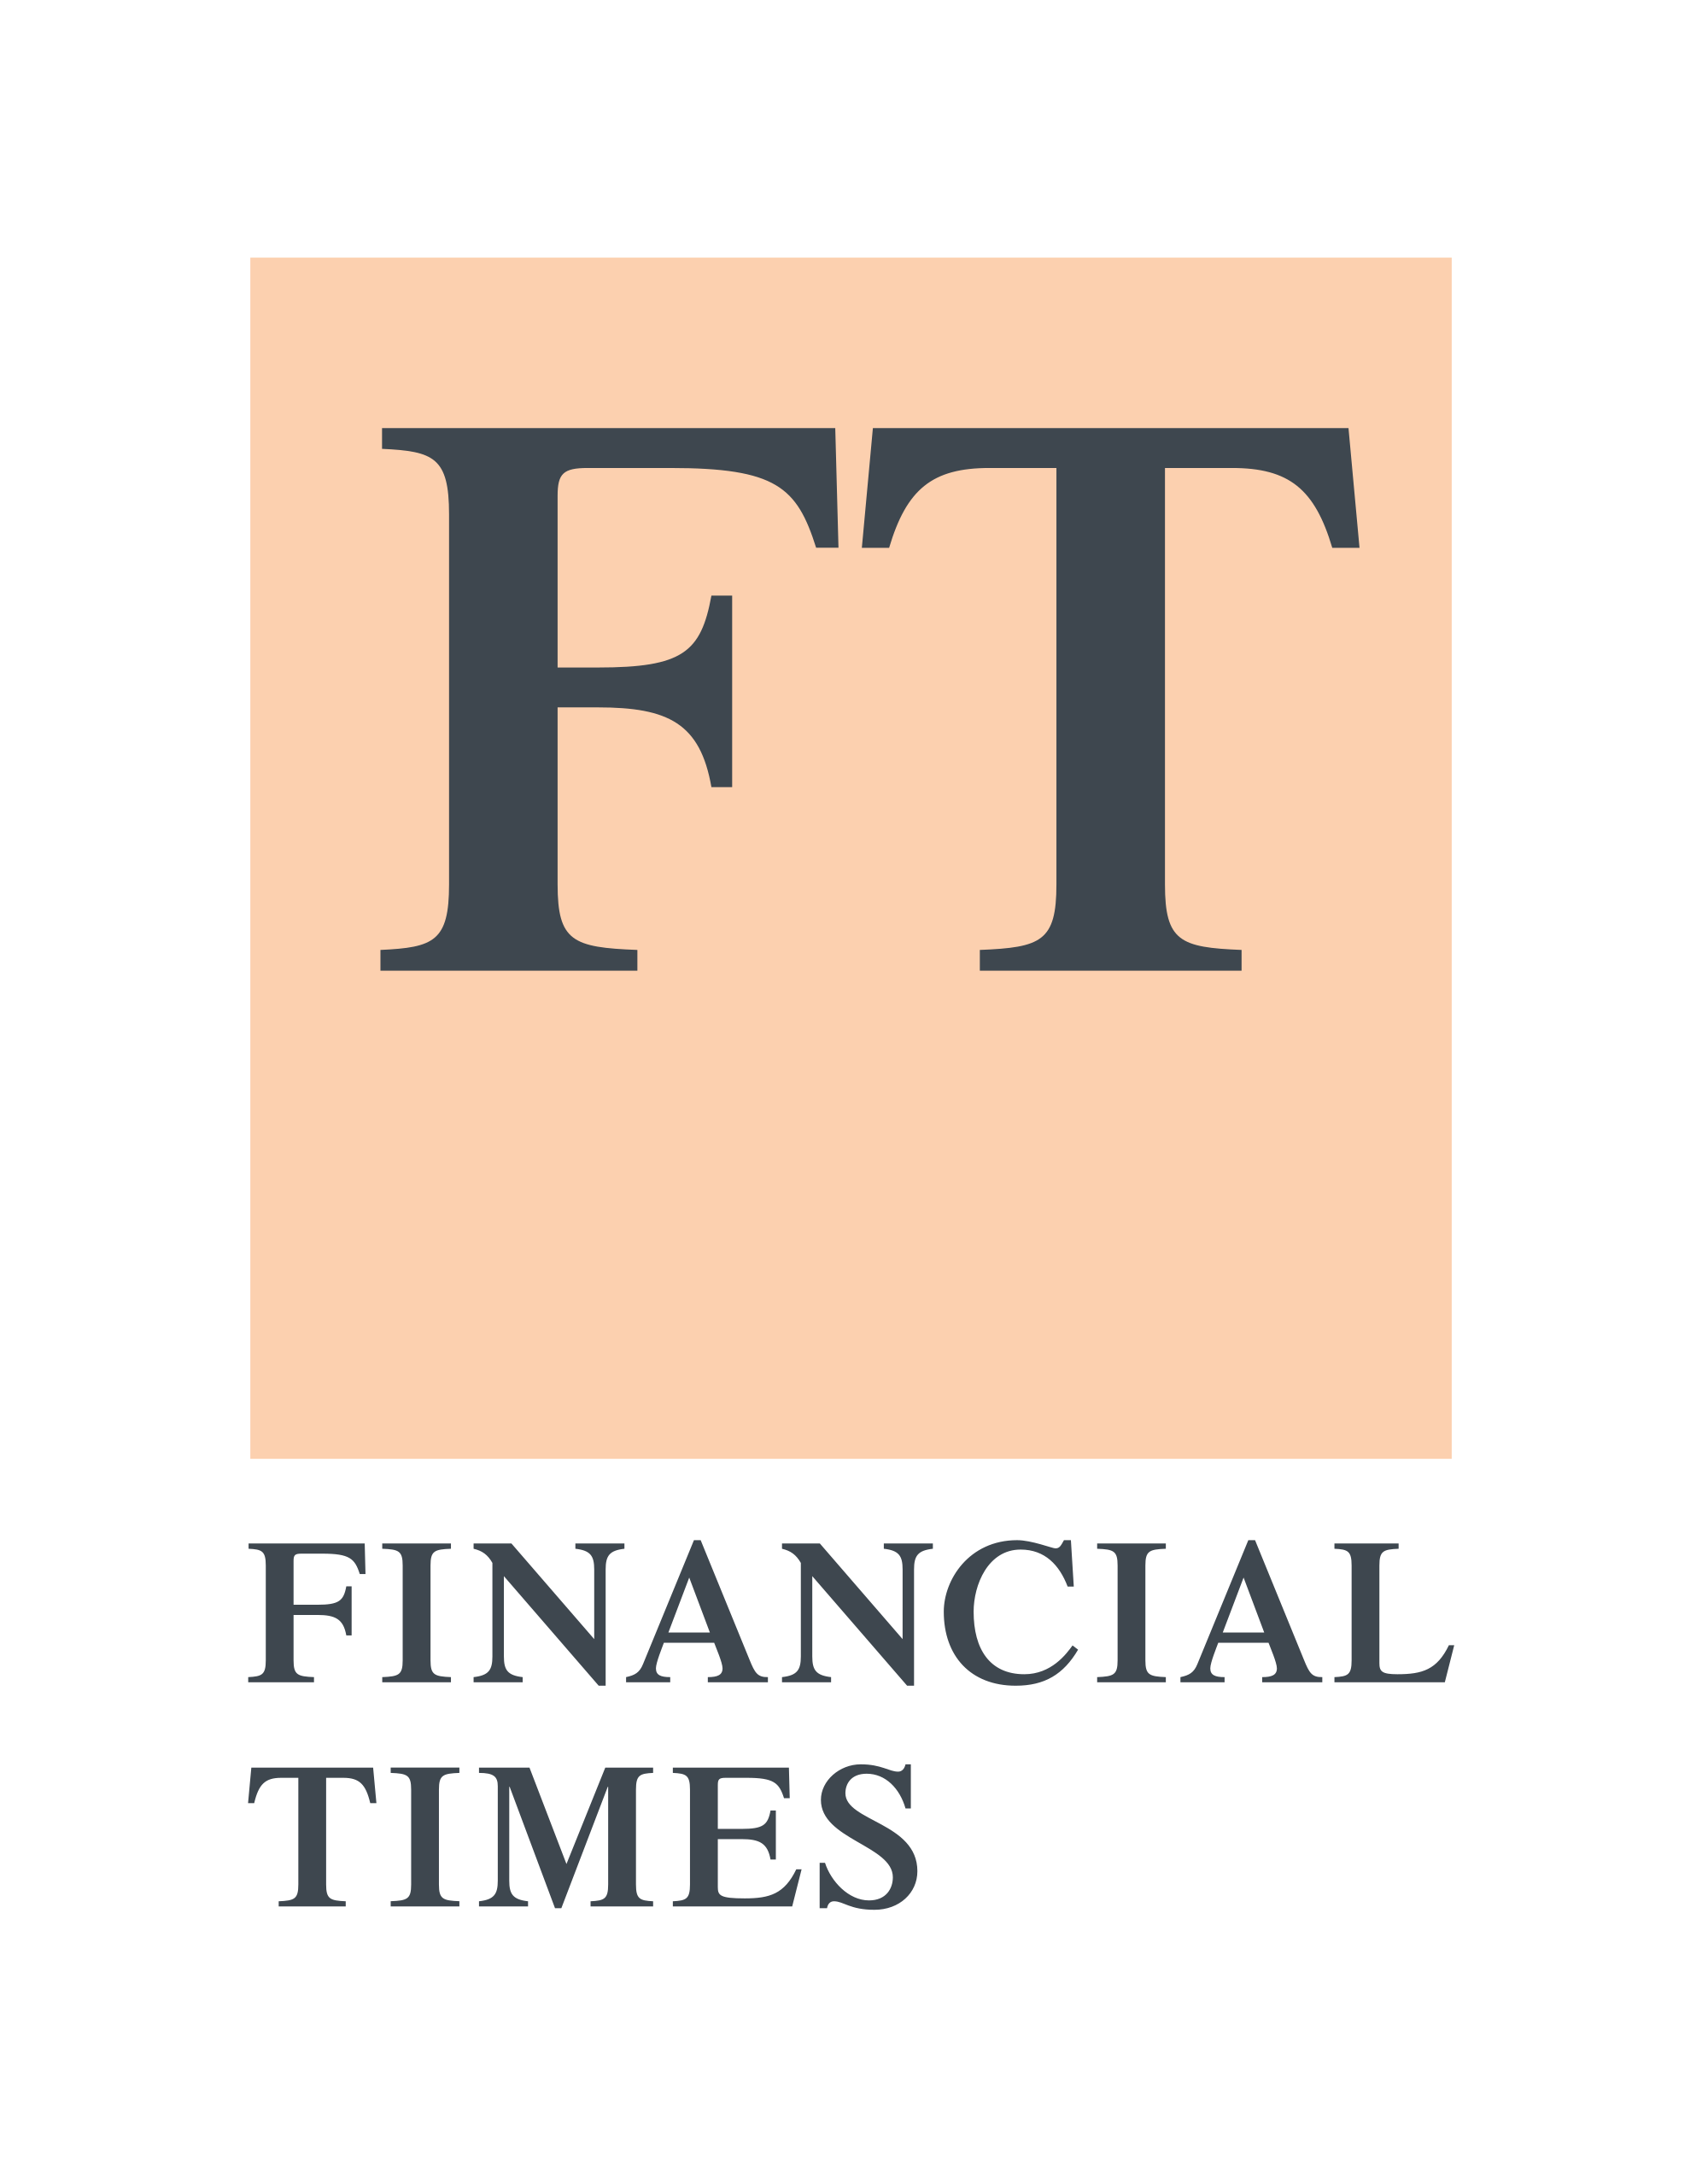 Financial times logo.png